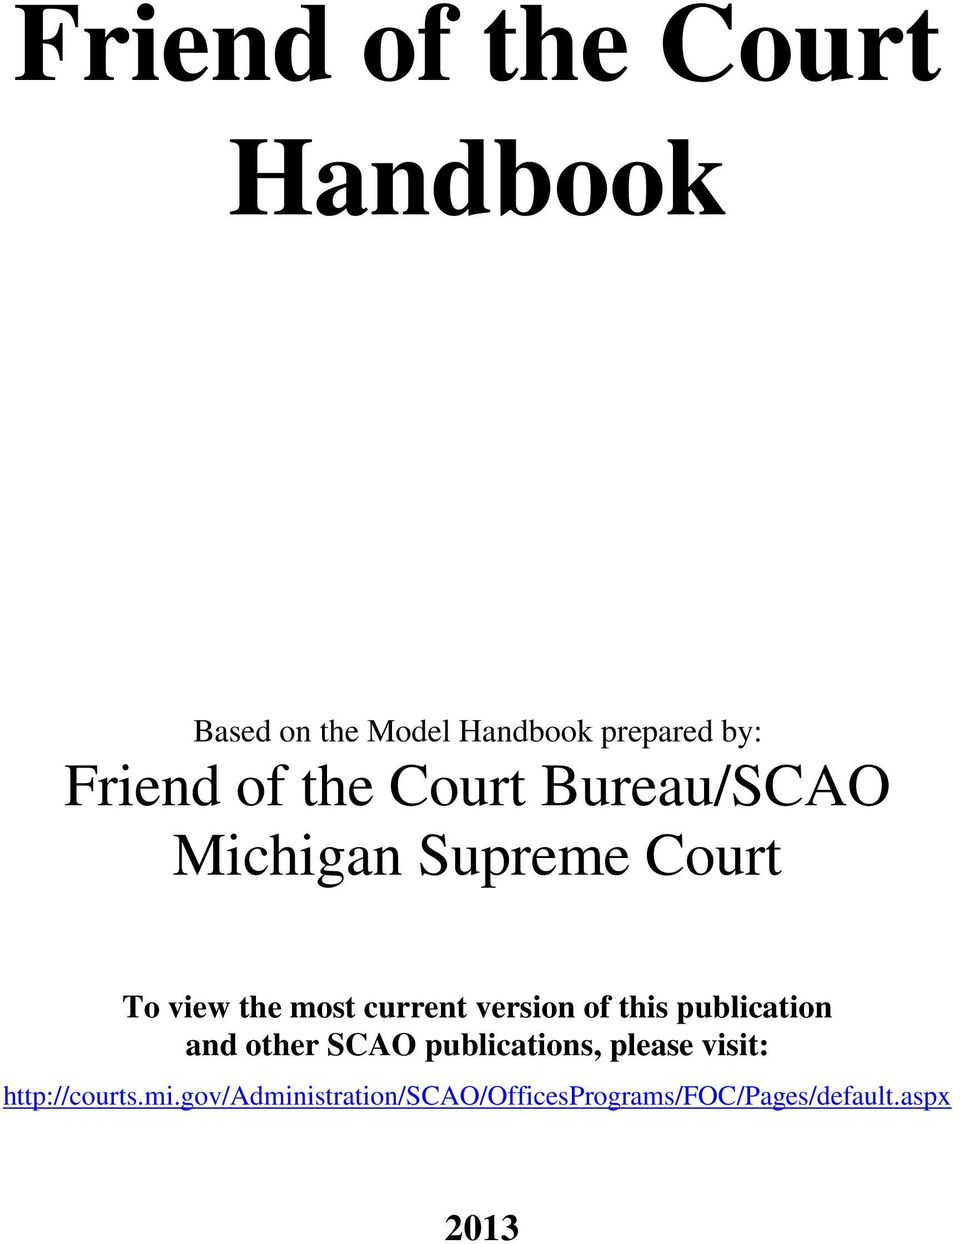 version of this publication and other SCAO publications, please visit: